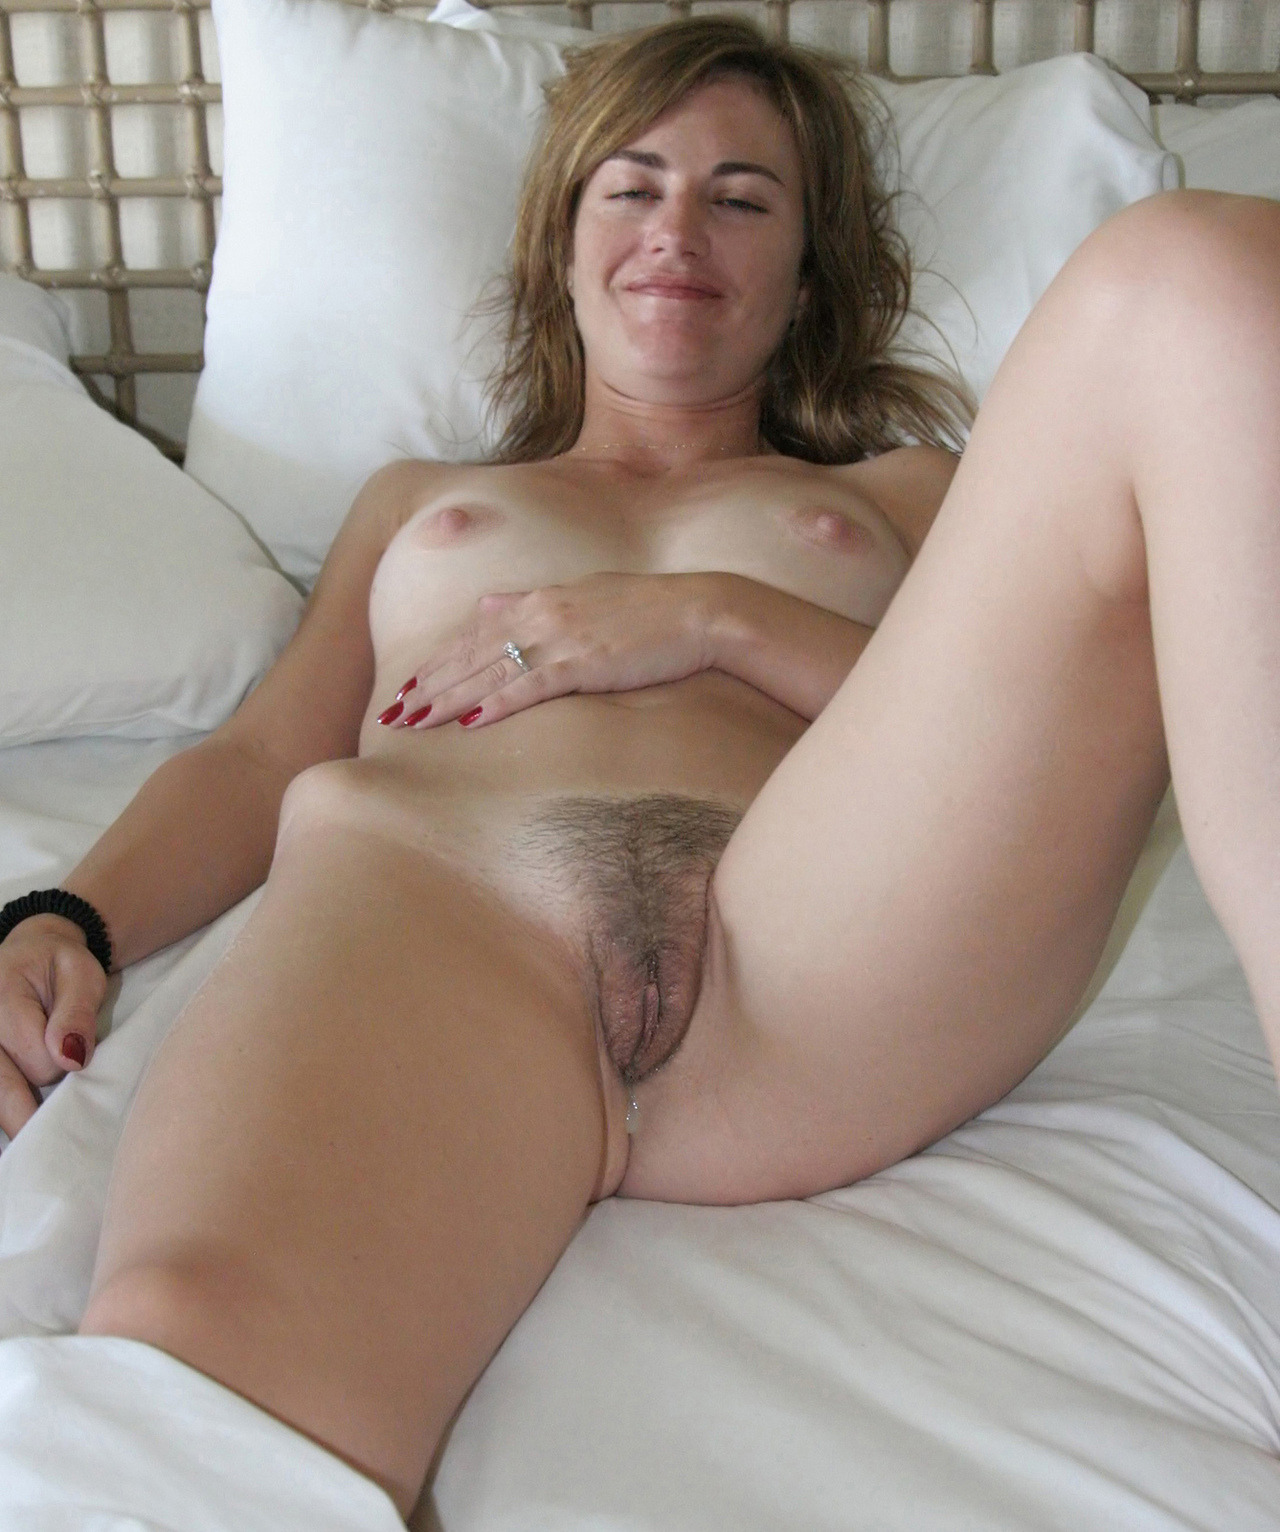 Dirty sweet hairy Wife fuck full porn one hot